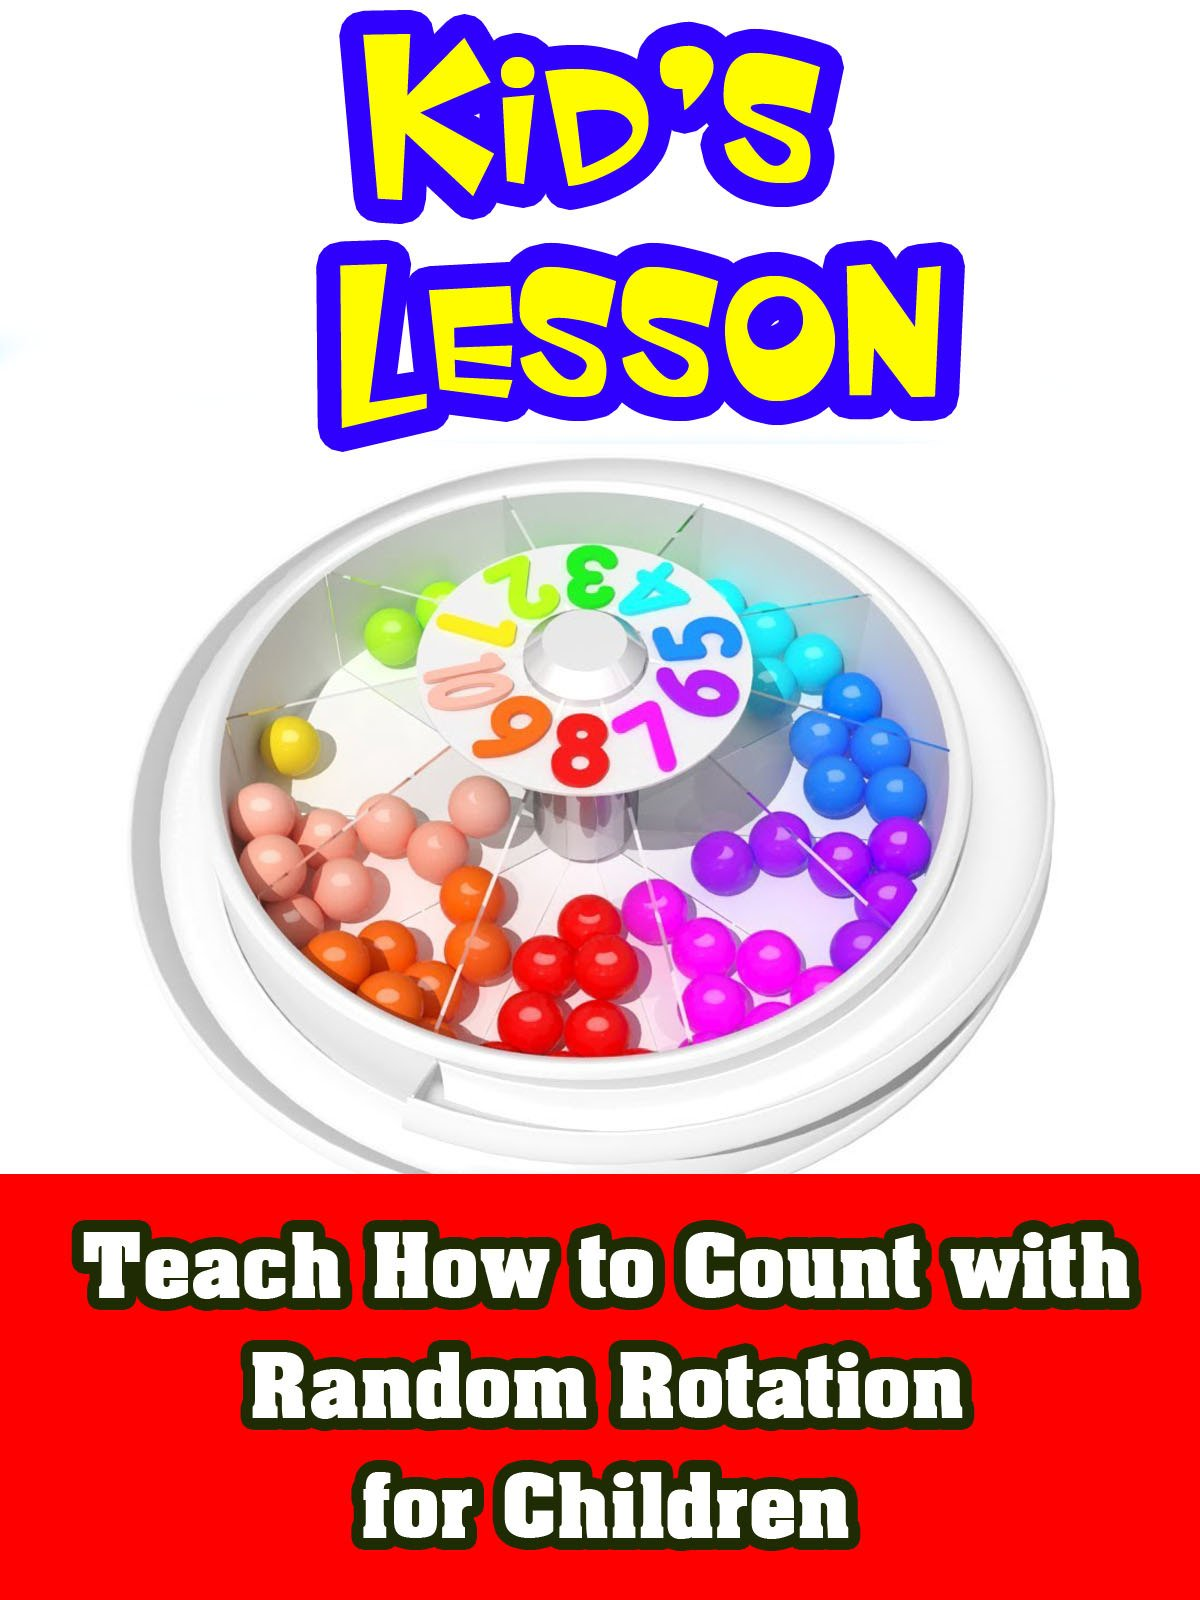 Teach How to Count with Random Rotation for Children